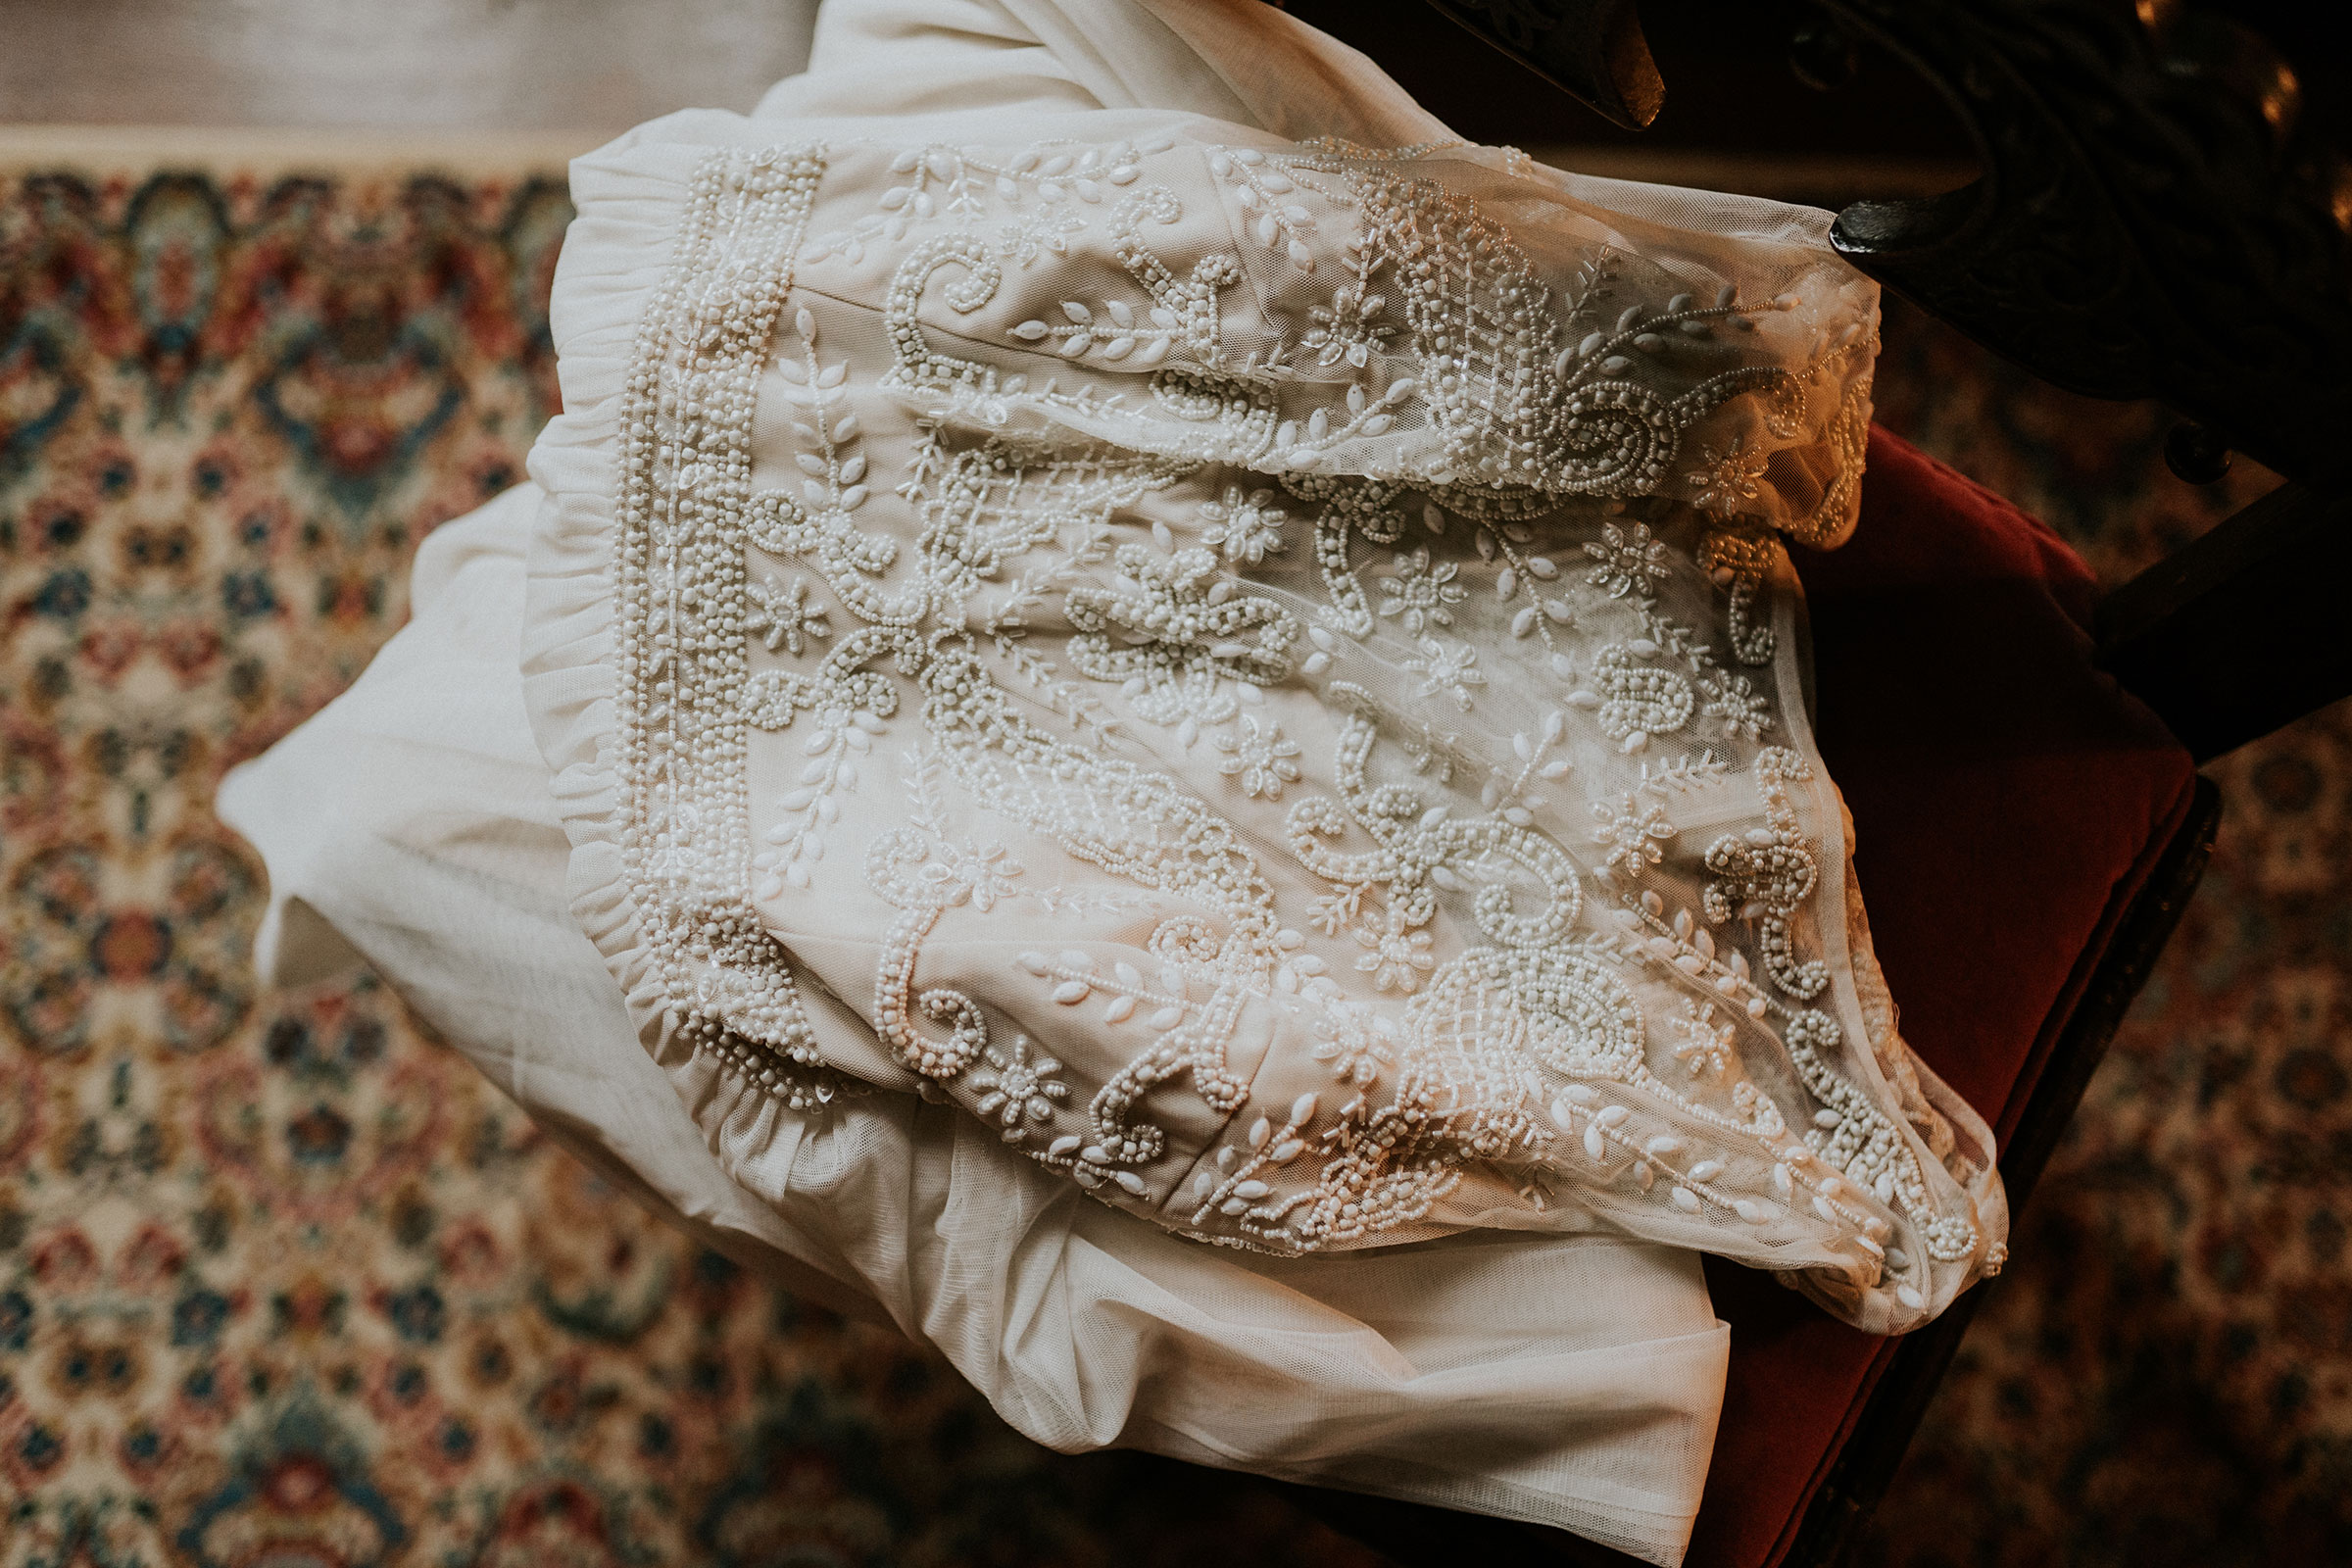 dress-detail-shot-laying-on-chair-elopement-salisbury-house-desmoines-iowa-raelyn-ramey-photography.jpg